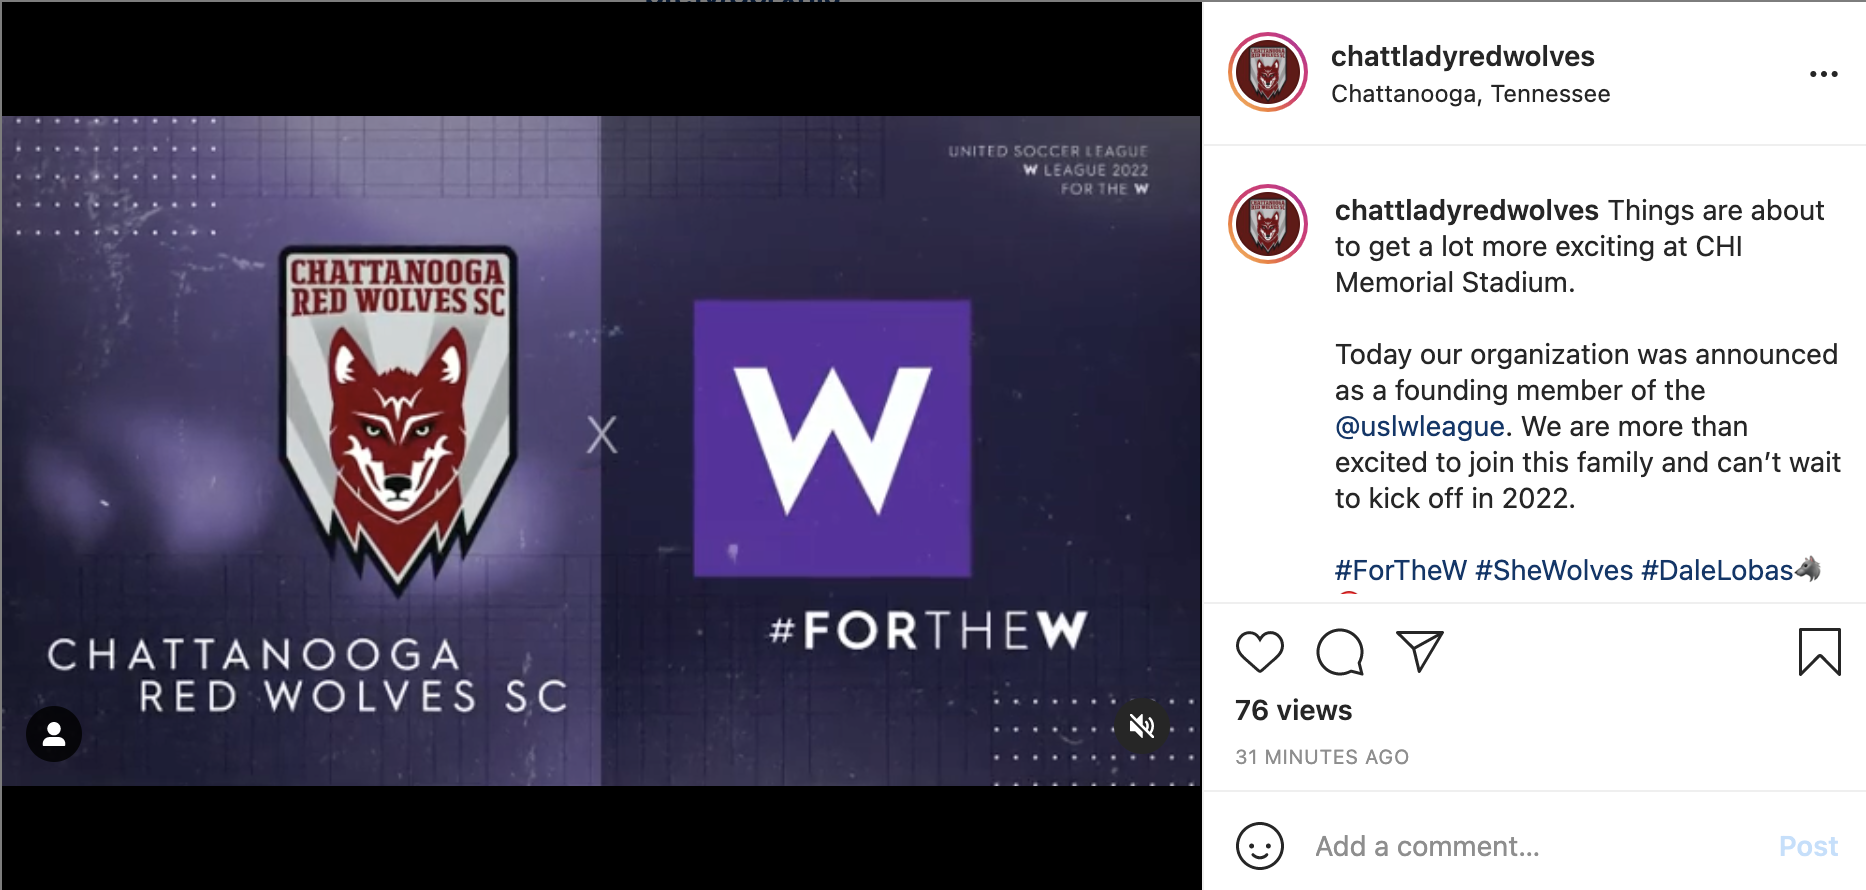 An Instagram screenshot of a graphic showcasing the Chattanooga Red Wolves logo and USLW league graphic